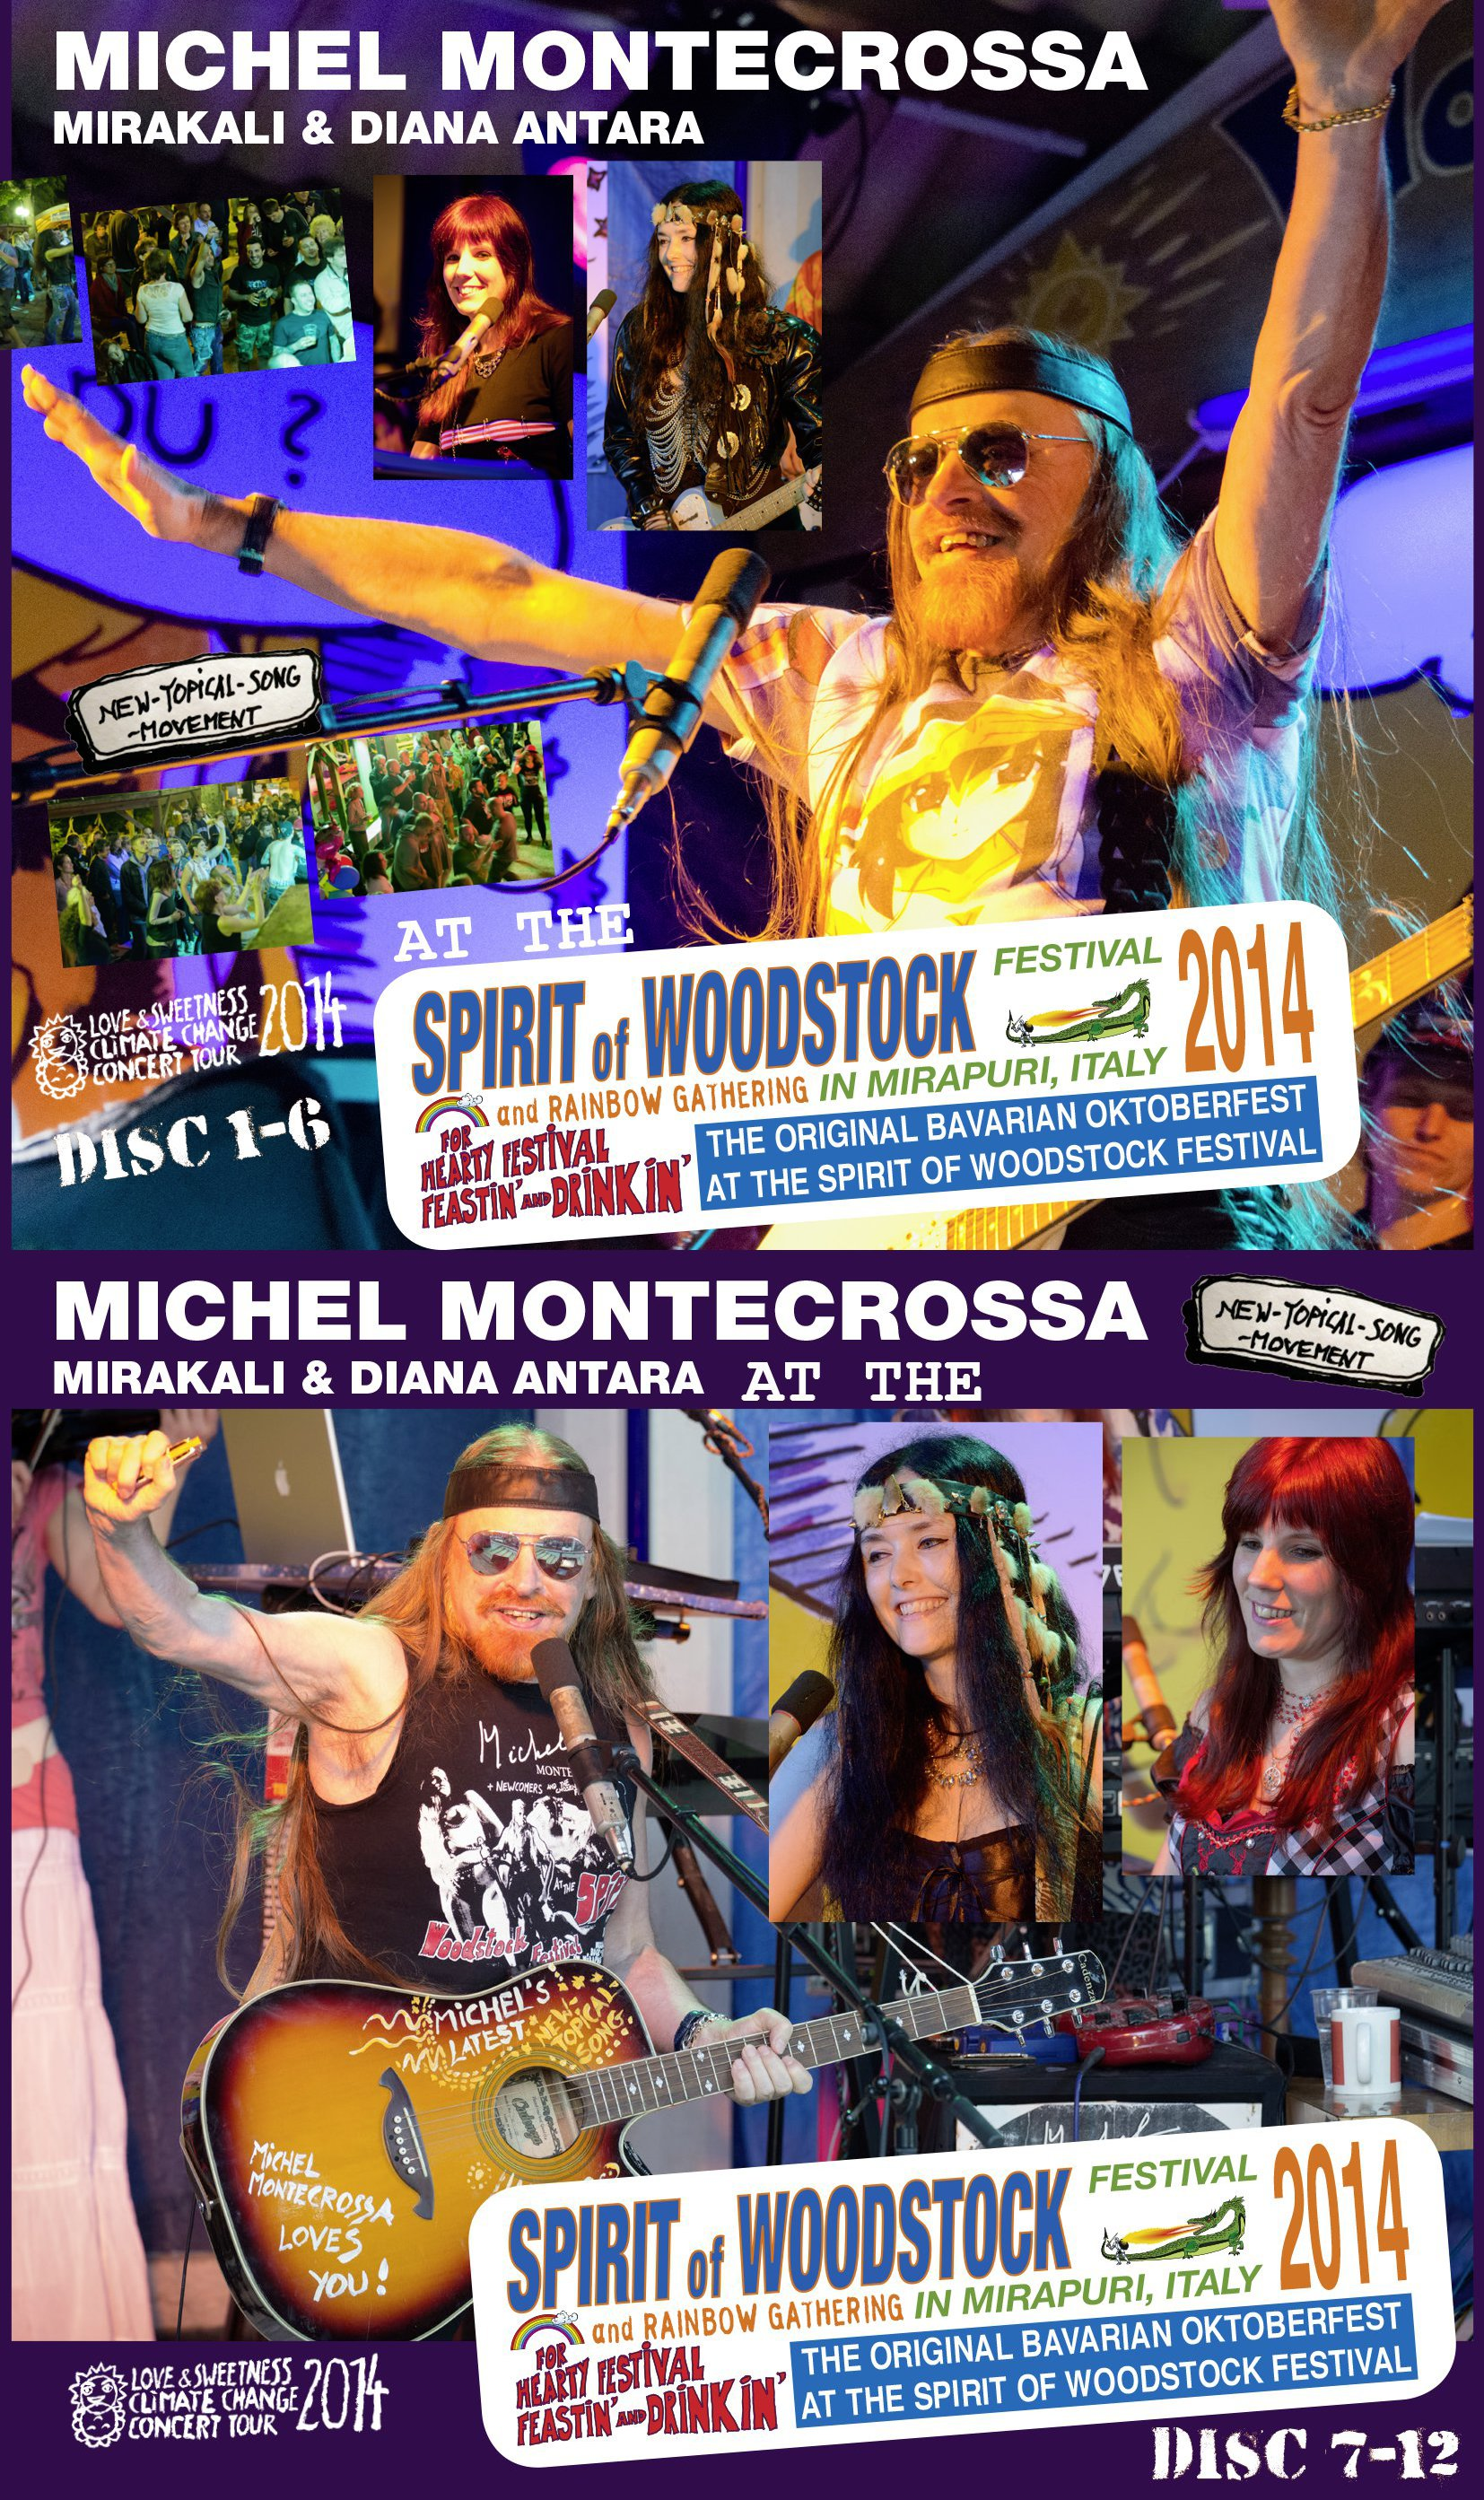 Michel Montecrossa, Mirakali and Diana Antara at the Spirit of Woodstock Festival 2013 in Mirapuri, Italy